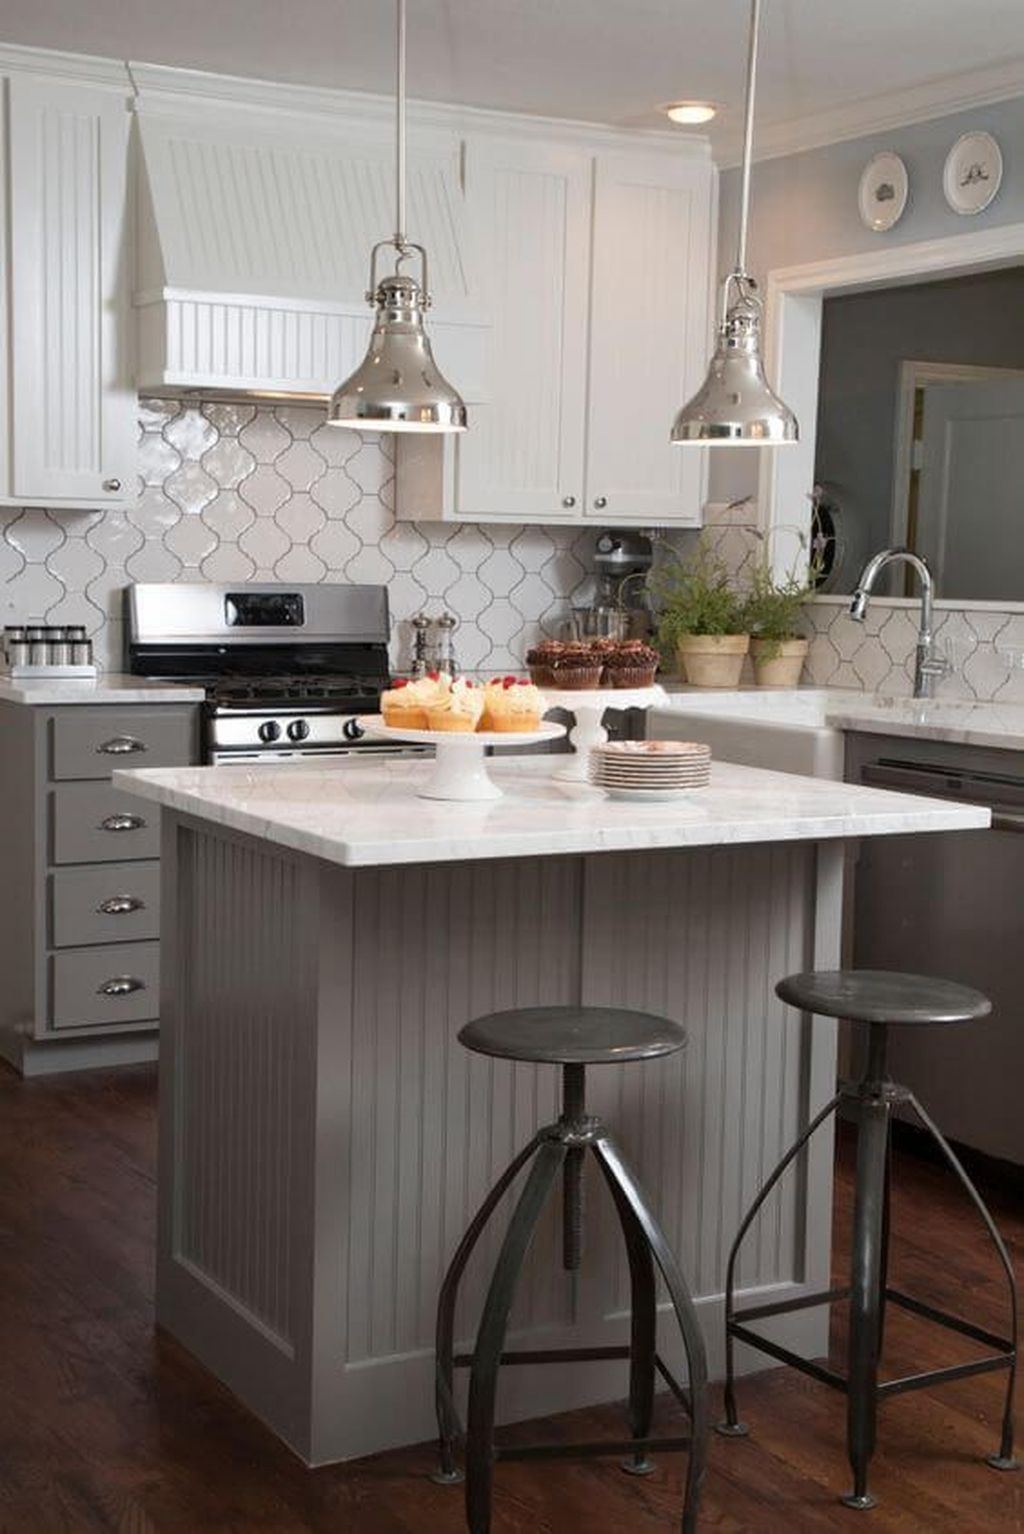 Totally Inspiring Small Kitchen Design Ideas For Your Small Home 20